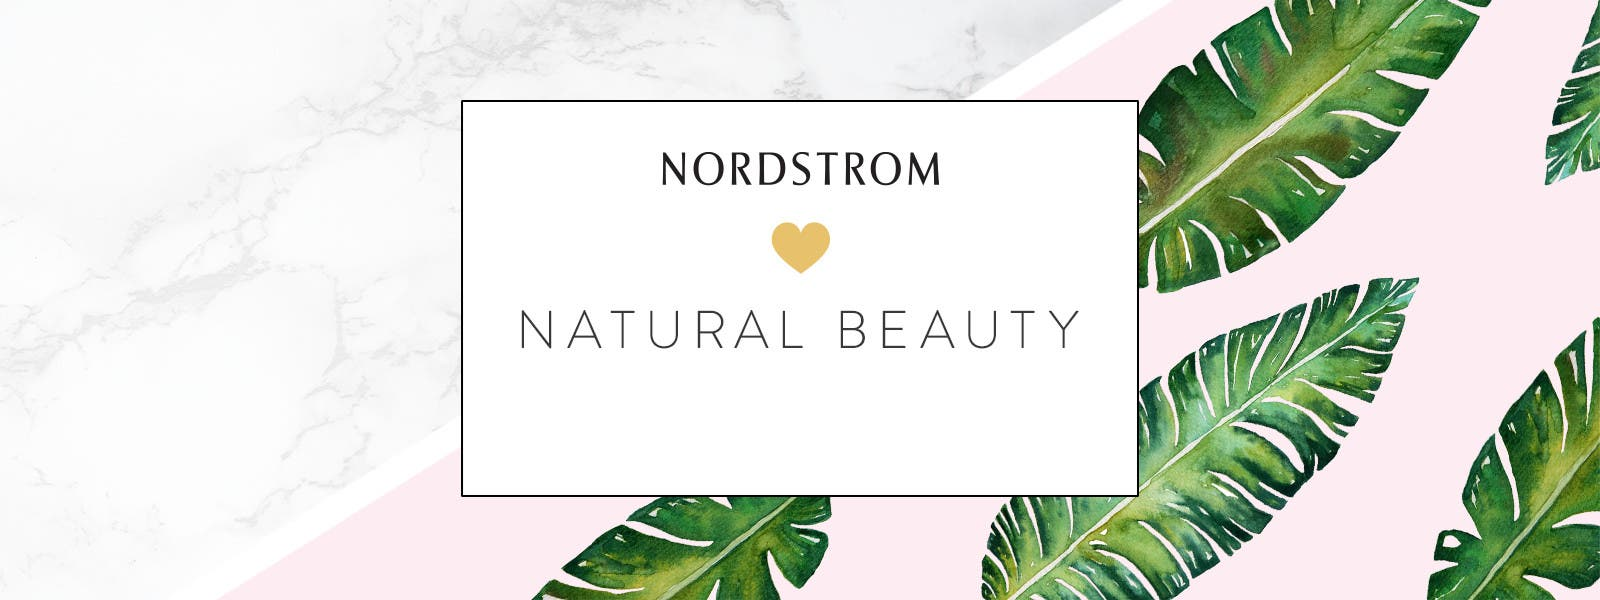 Nordstrom loves natural beauty.